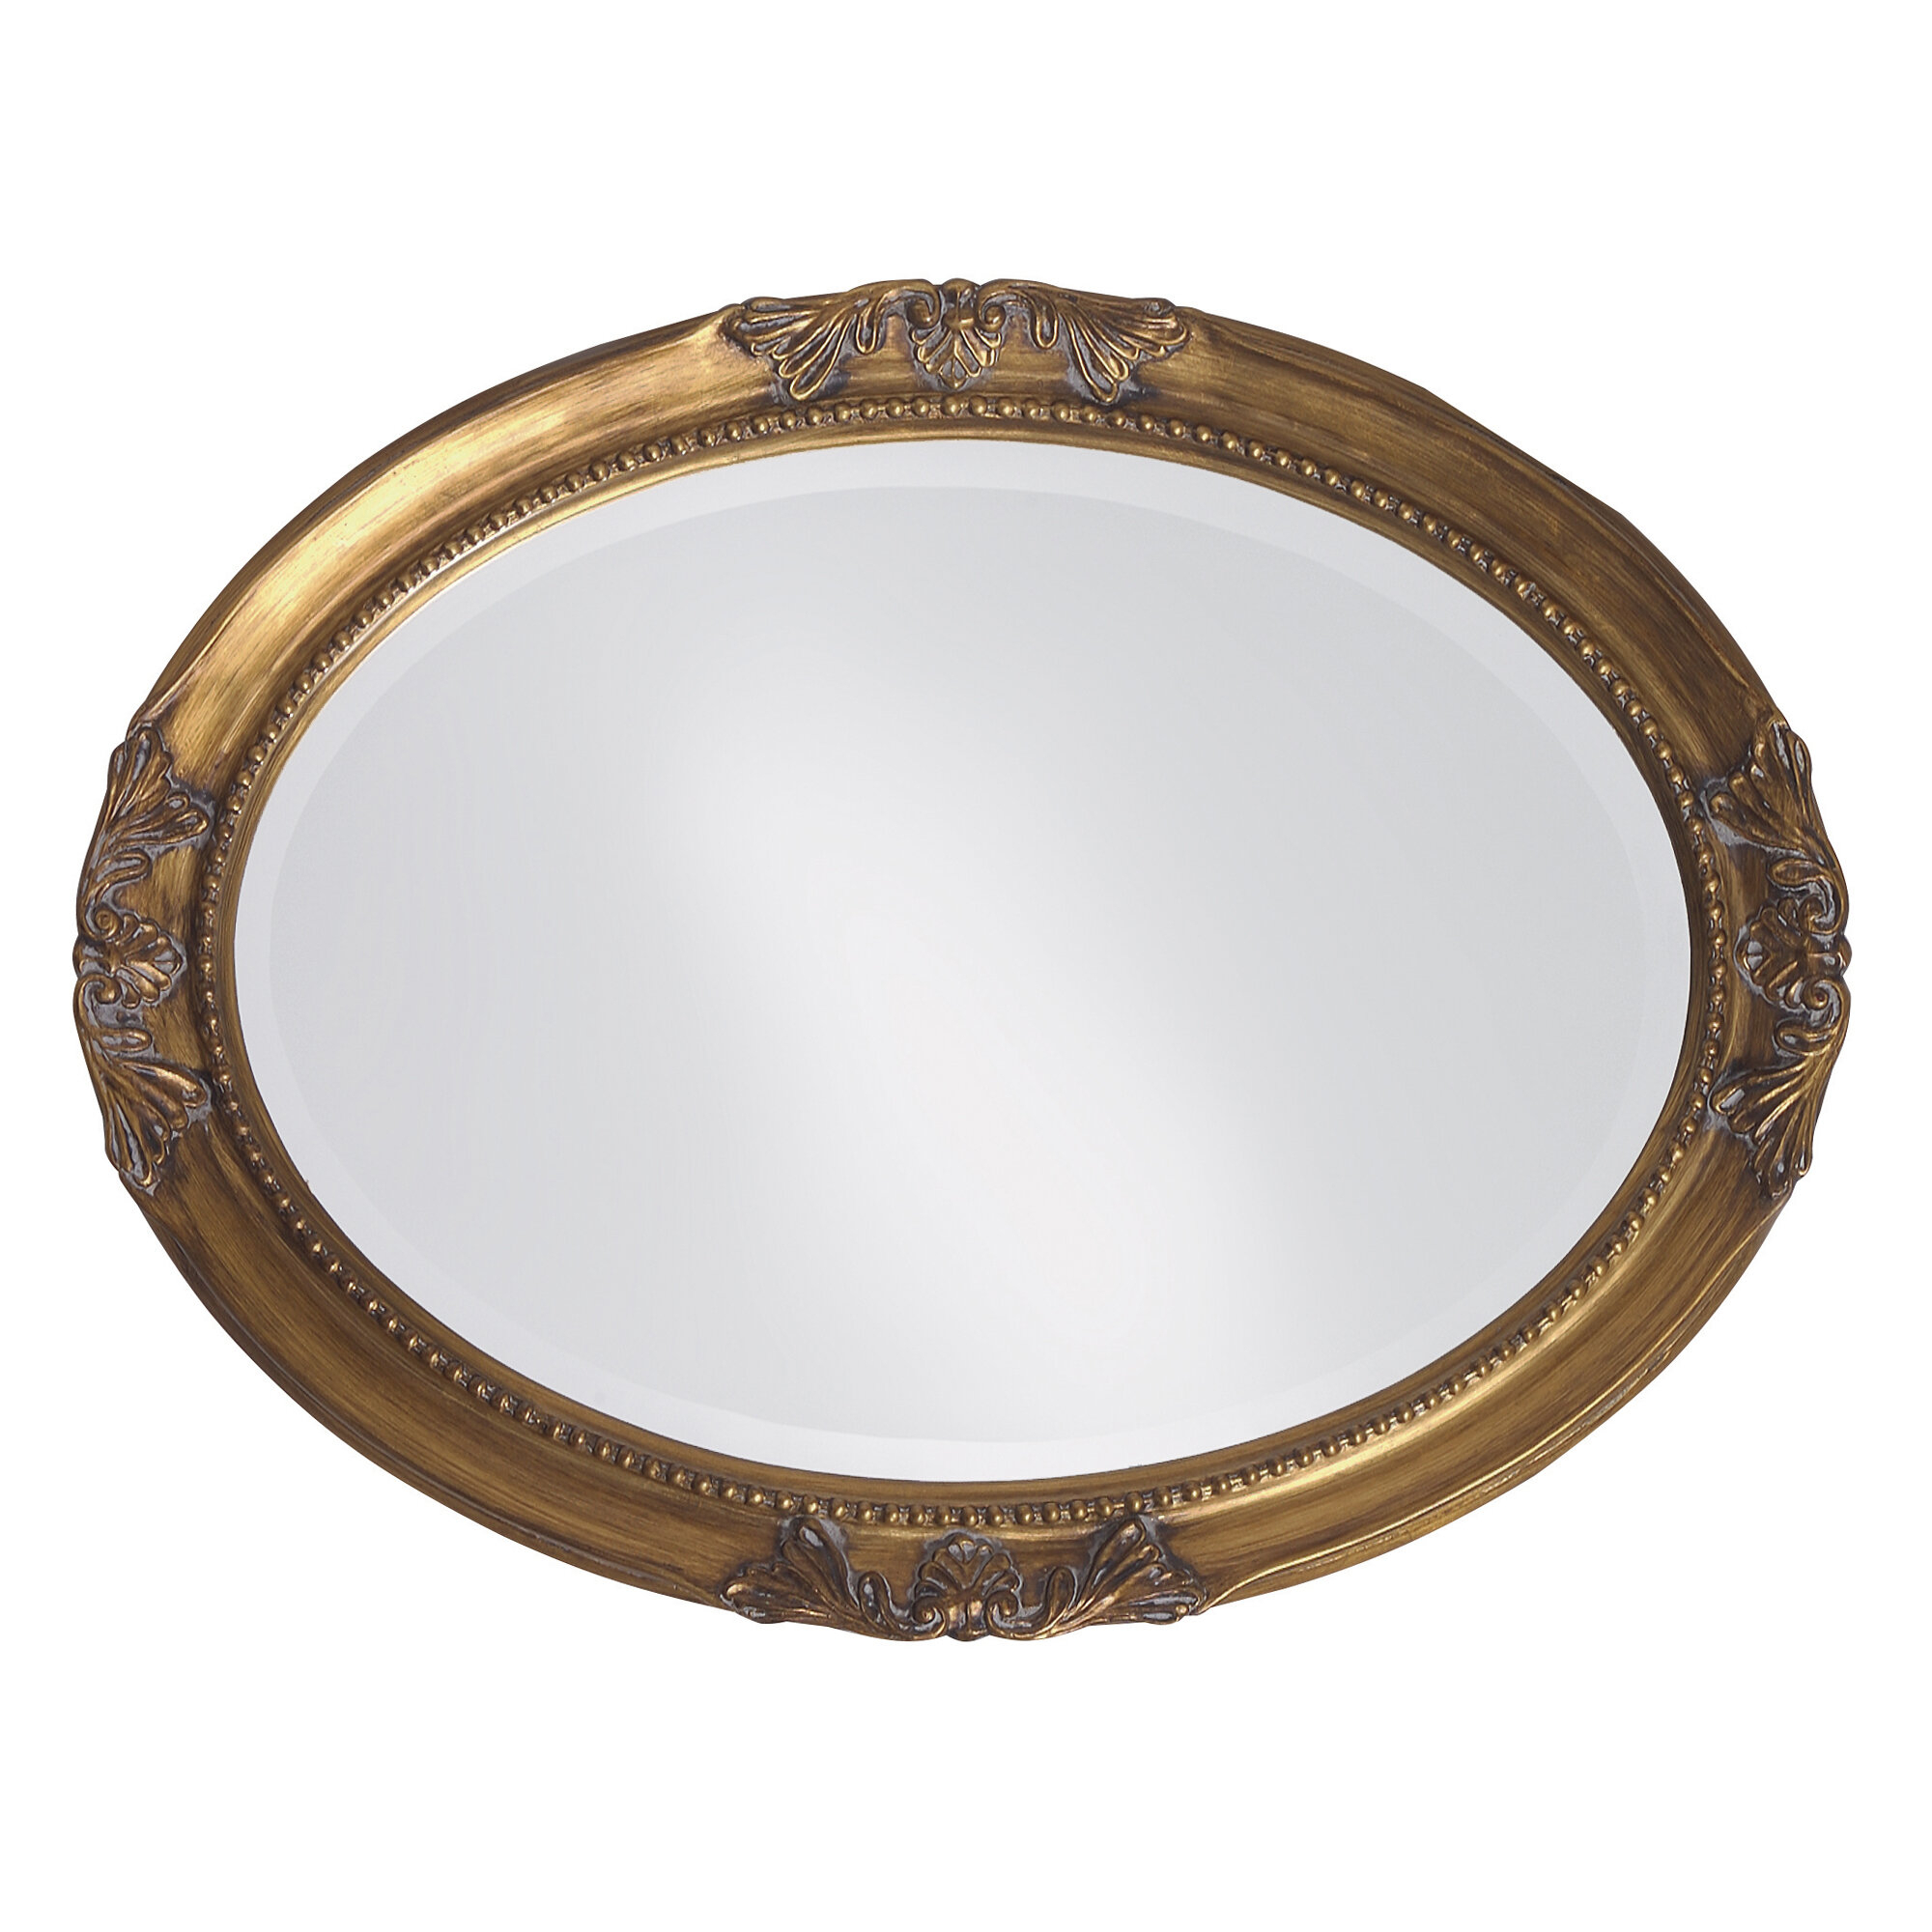 Oval Wood Wall Mirror With Oval Wood Wall Mirrors (View 19 of 30)